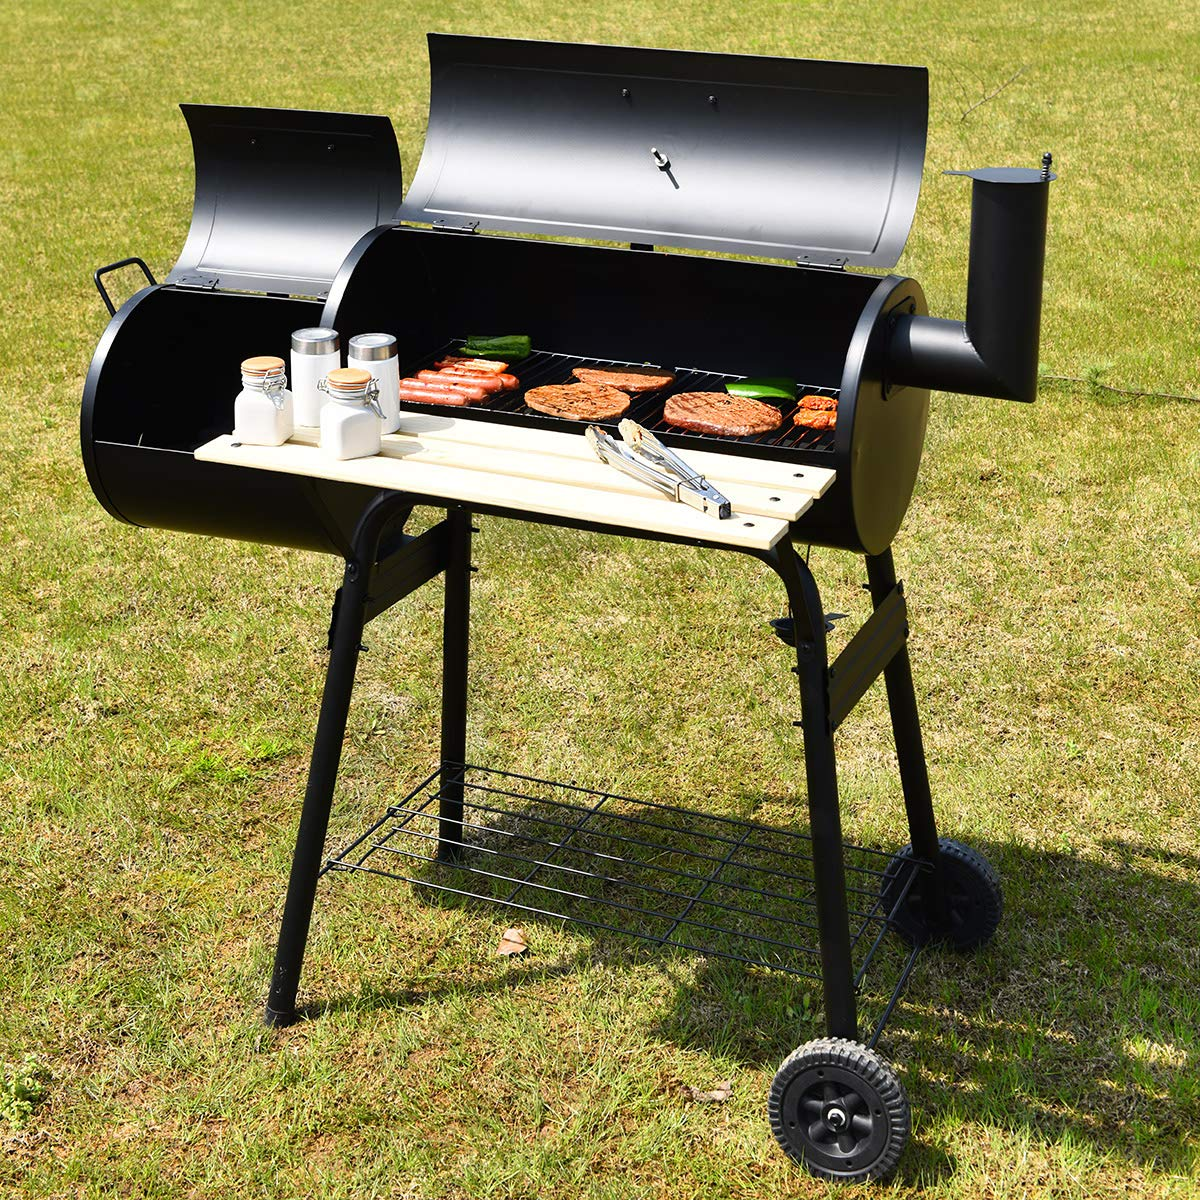 Giantex BBQ Grill Charcoal Barbecue Grill Outdoor Pit Patio Backyard Home Meat Cooker Smoker with Offset Smoker by Giantex (Image #2)